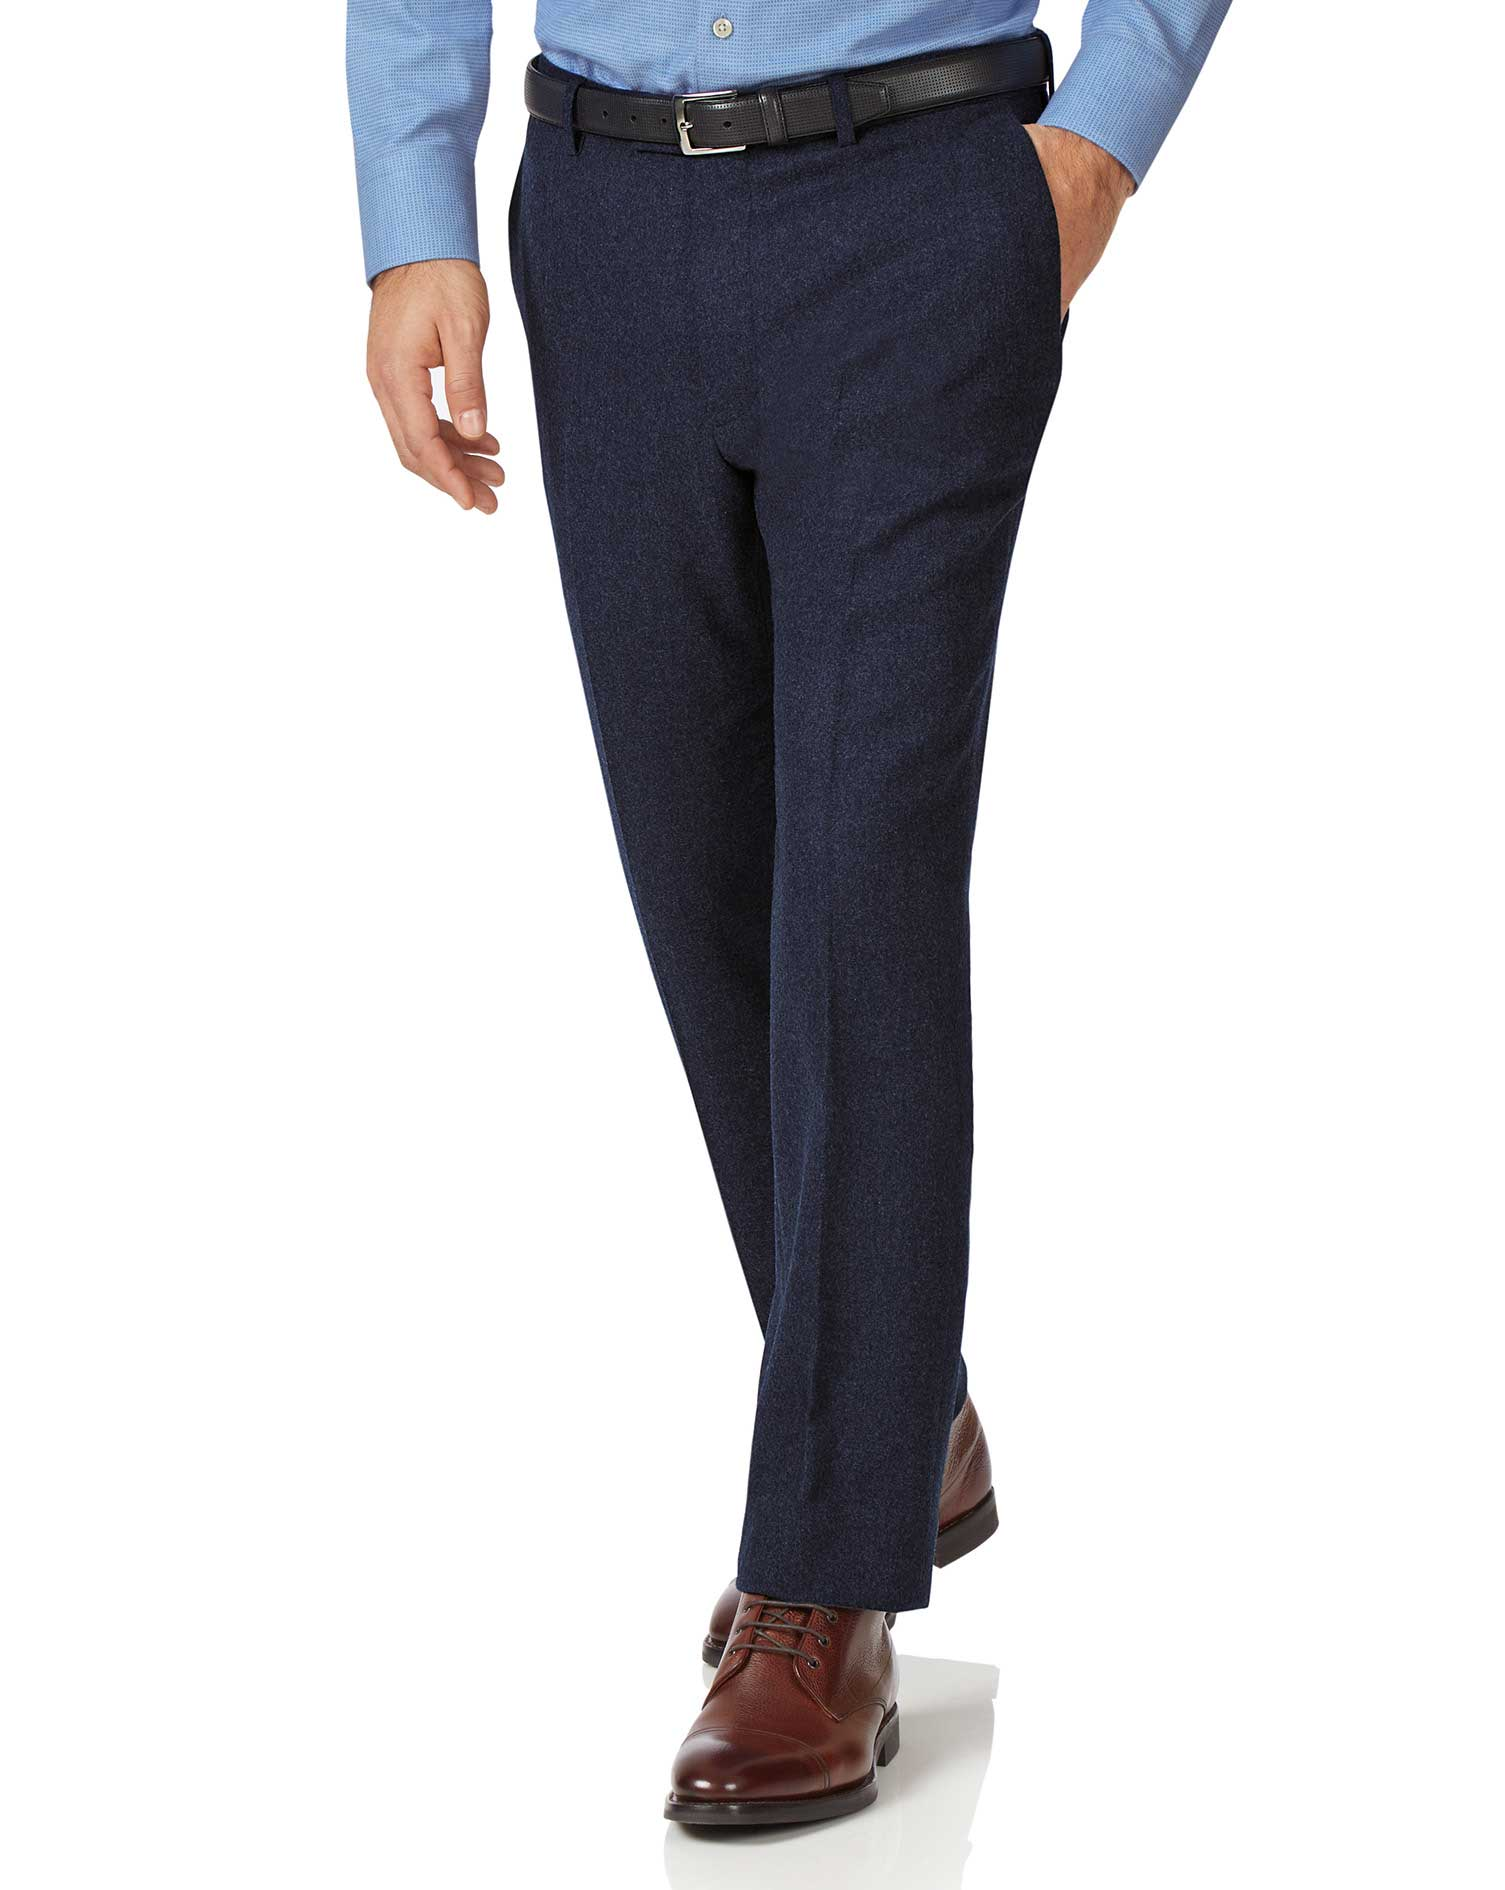 Navy Slim Fit Wool Flannel Trousers Size W40 L32 by Charles Tyrwhitt